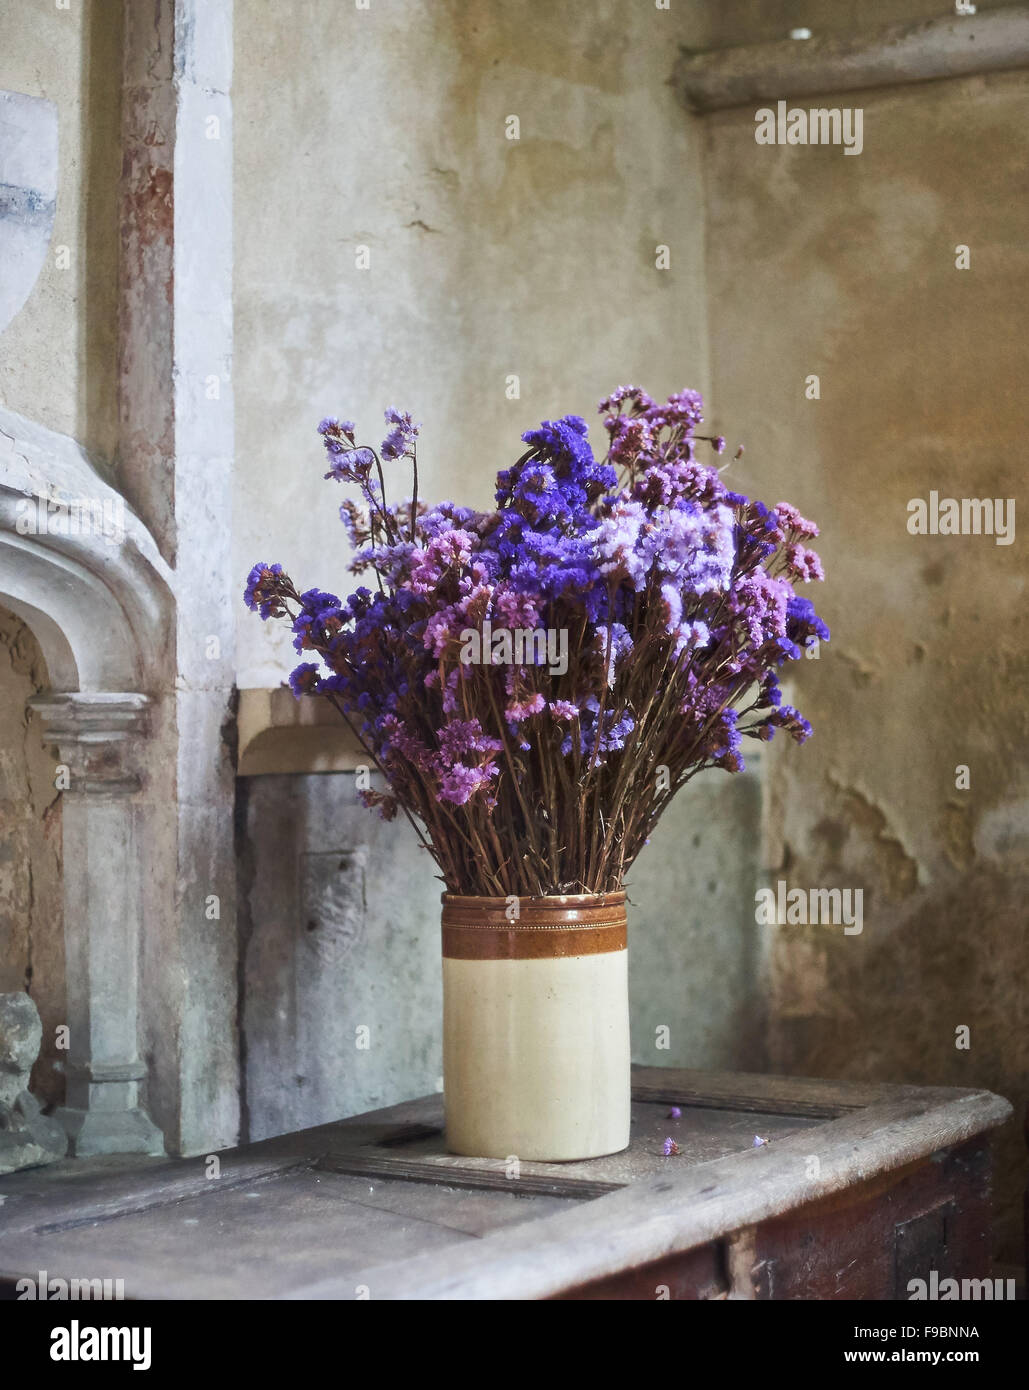 Dried Purple Flowers High Resolution Stock Photography And Images Alamy